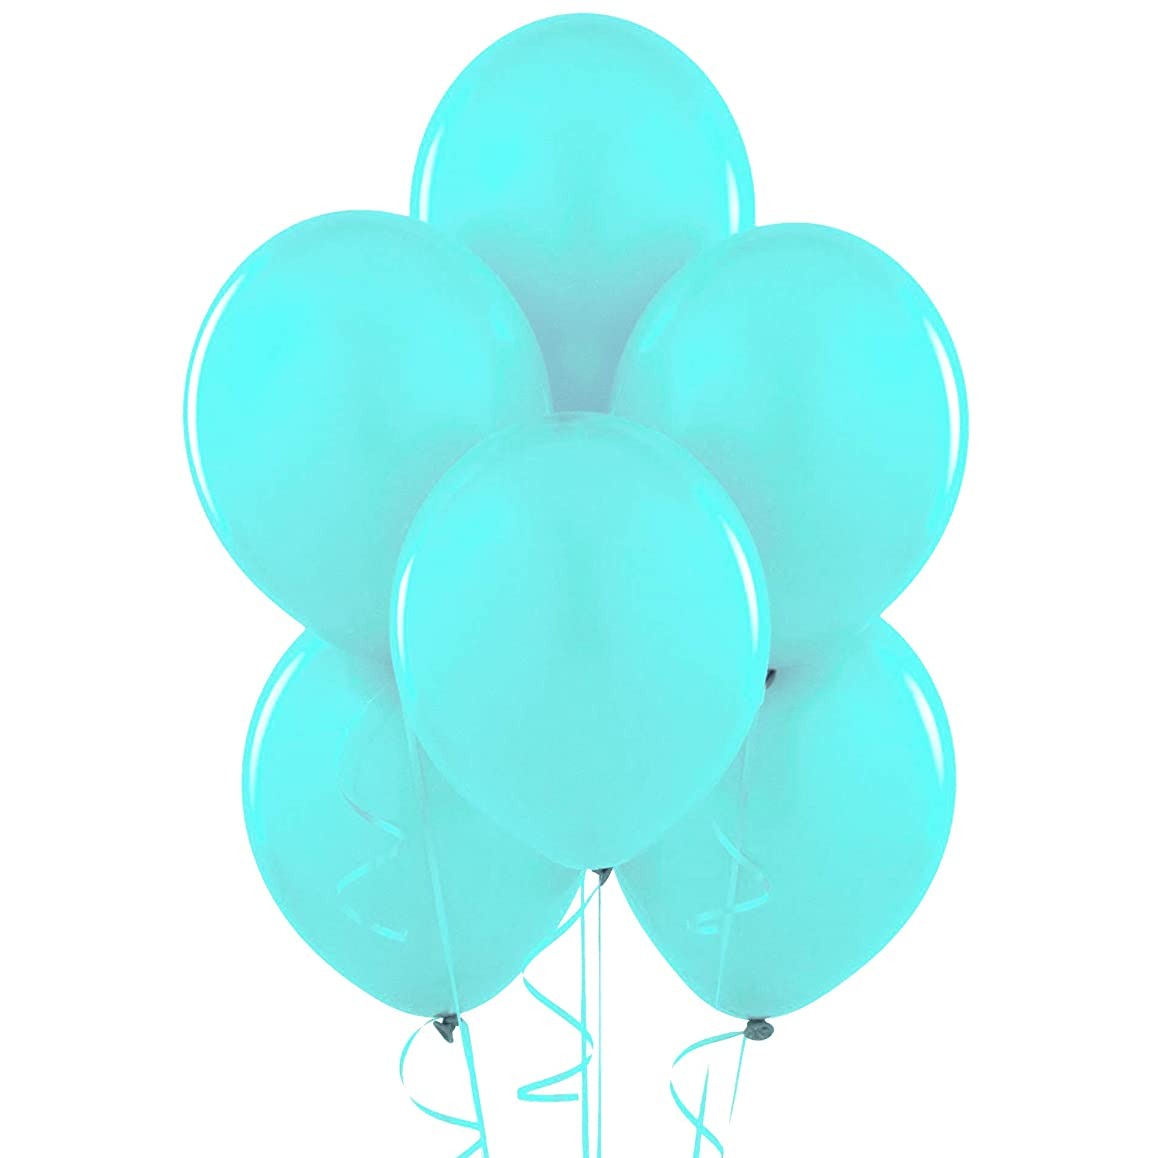 Pastel Turquoise Blue (Tiffany) 12 Inch Thickened Latex Balloons, Pack of 144, Premium Helium Quality for Wedding Bridal Baby Shower Birthday Party Decorations Supplies Ballon Baloon Thinken